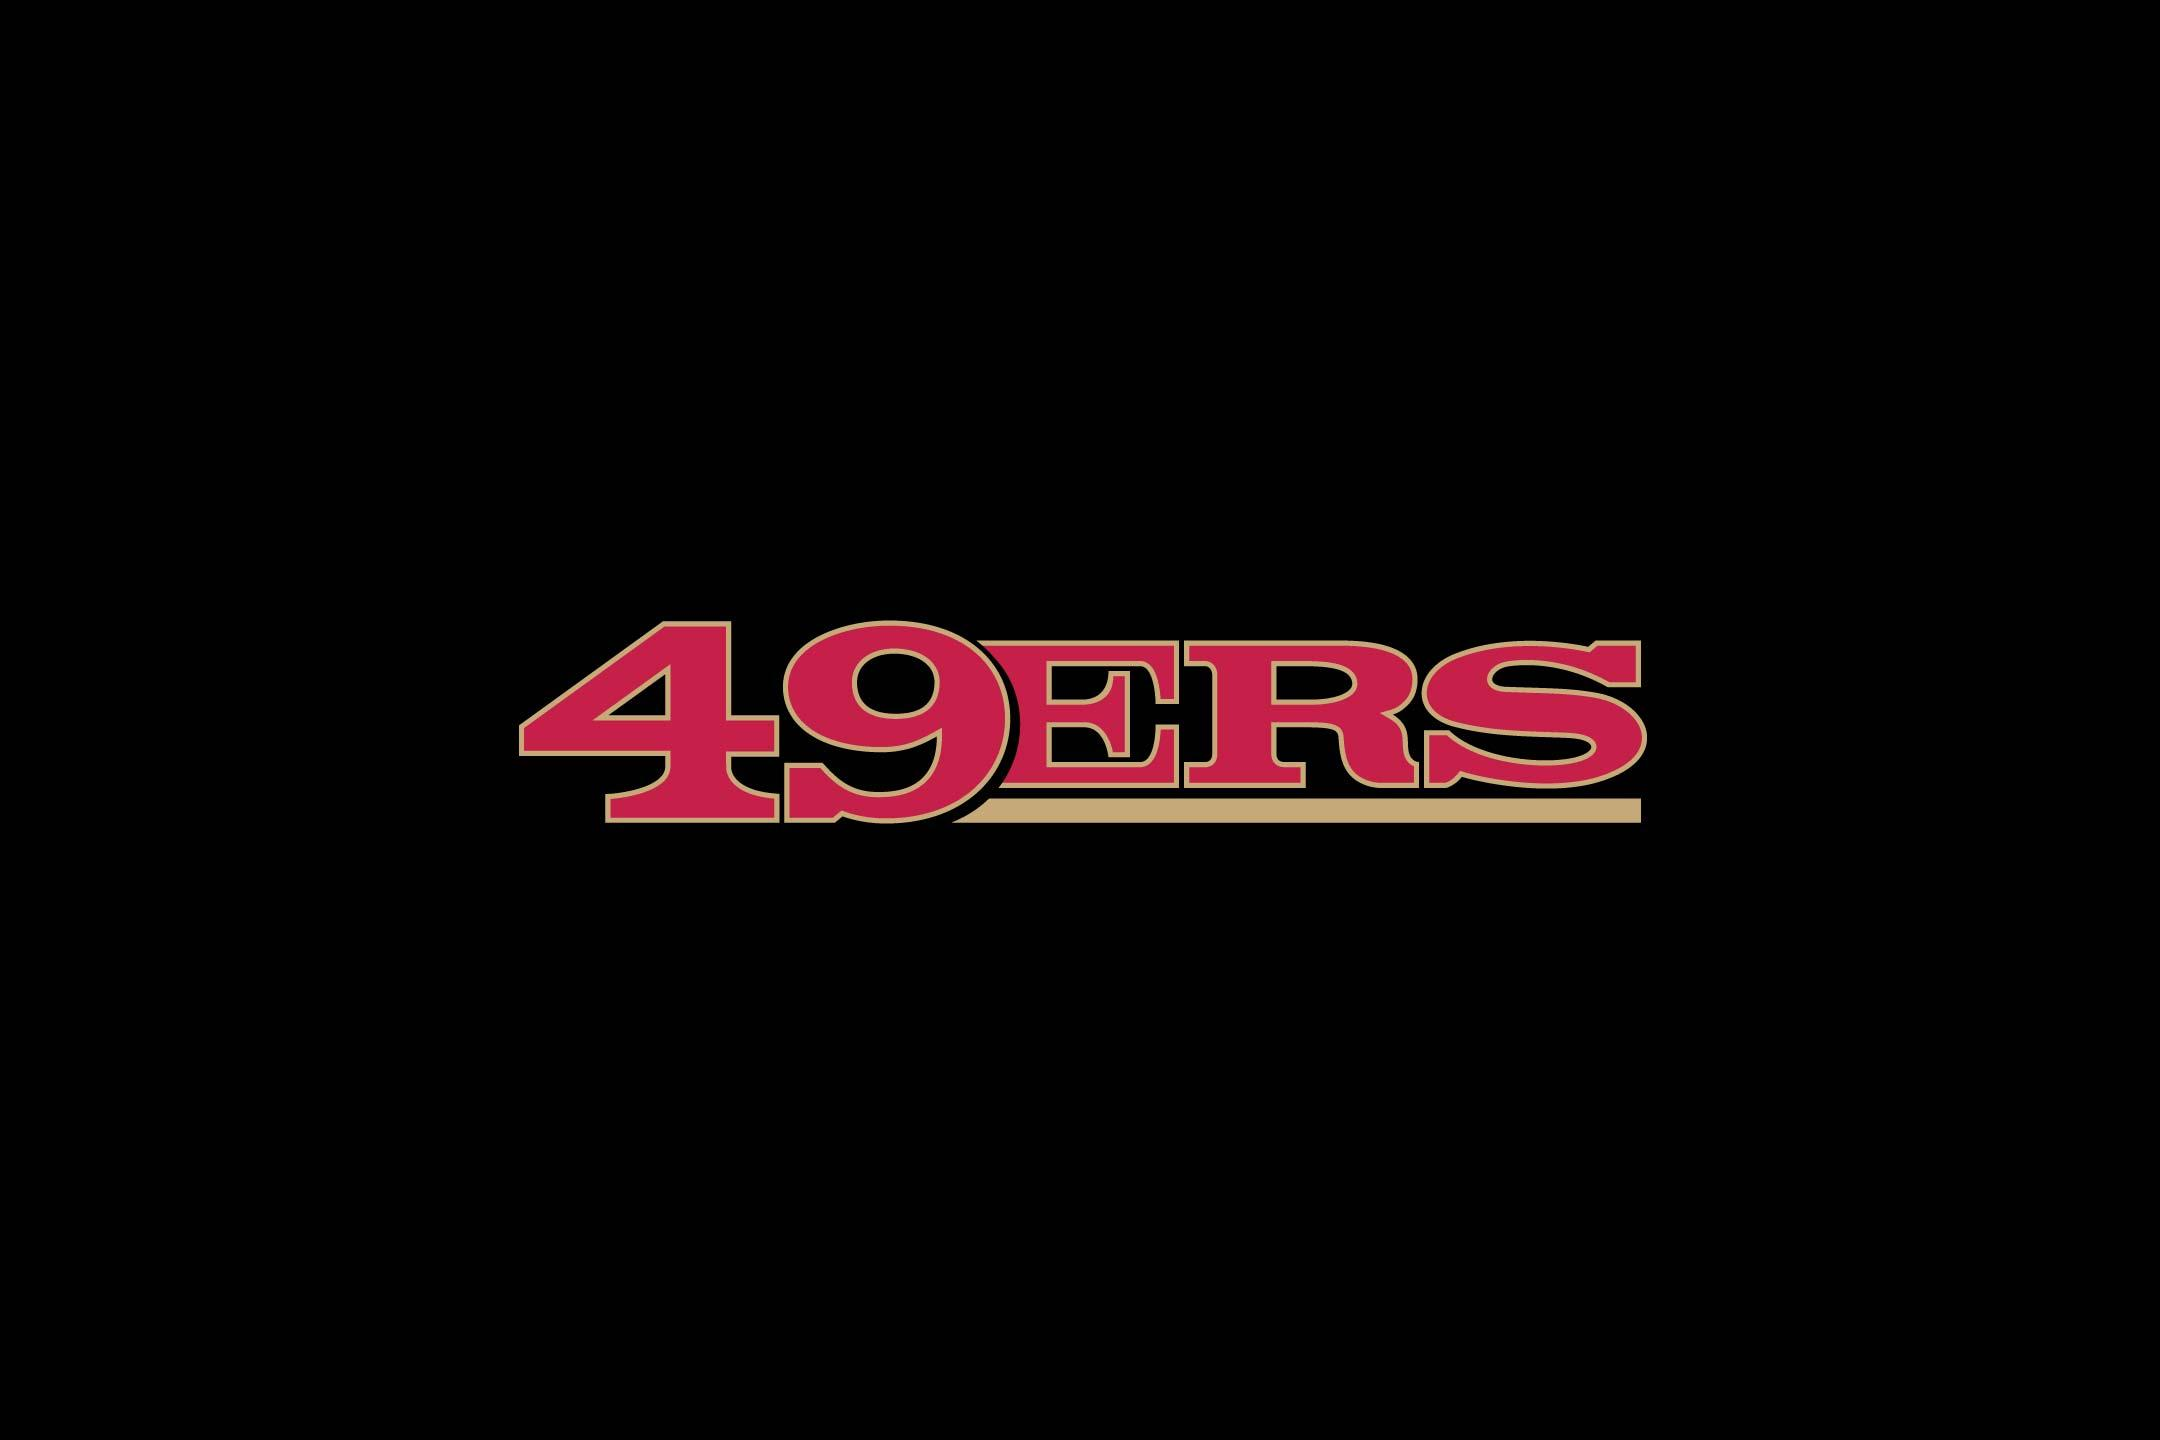 49ers wallpapers 2017 wallpaper cave 49ers 2016 schedule wallpapers wallpaper cave voltagebd Images